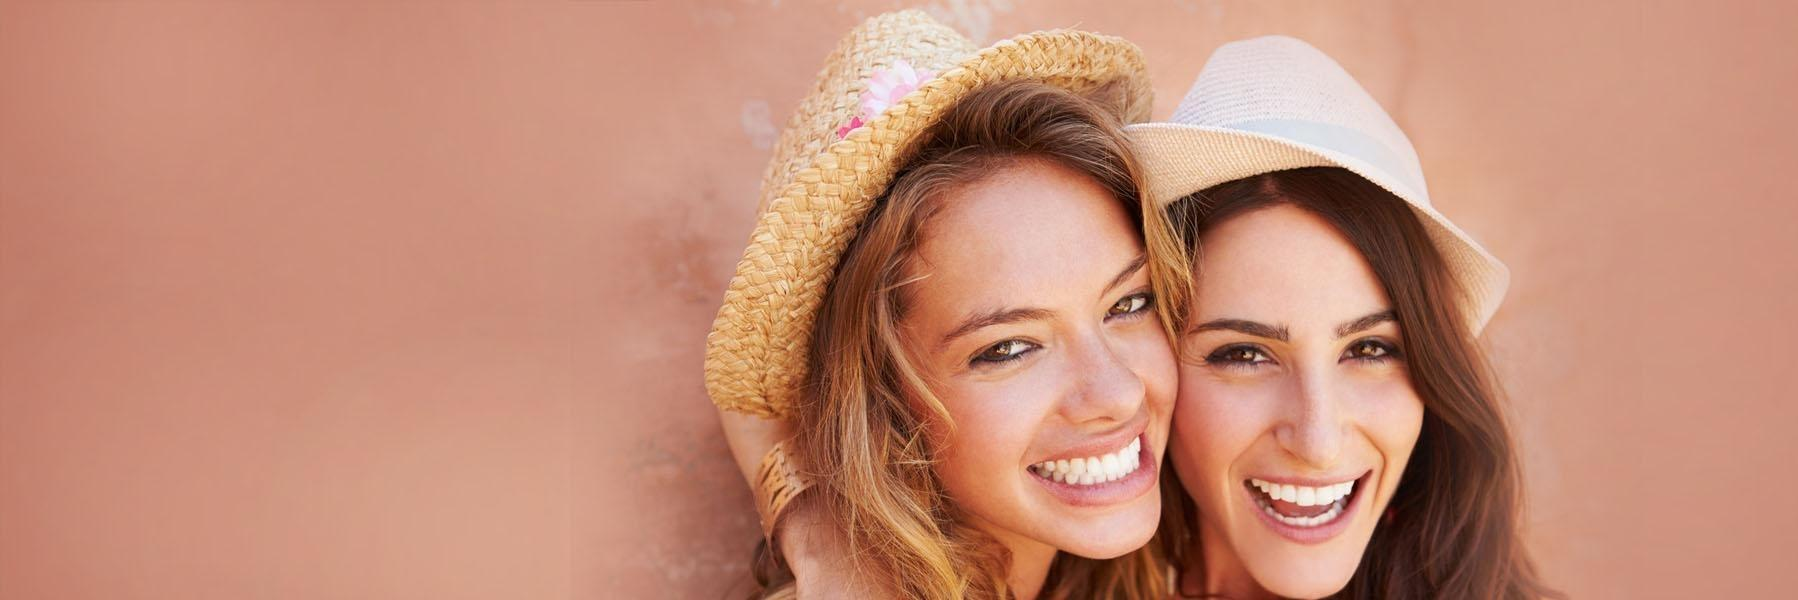 Two women with hats smiling l 30566 Dentist